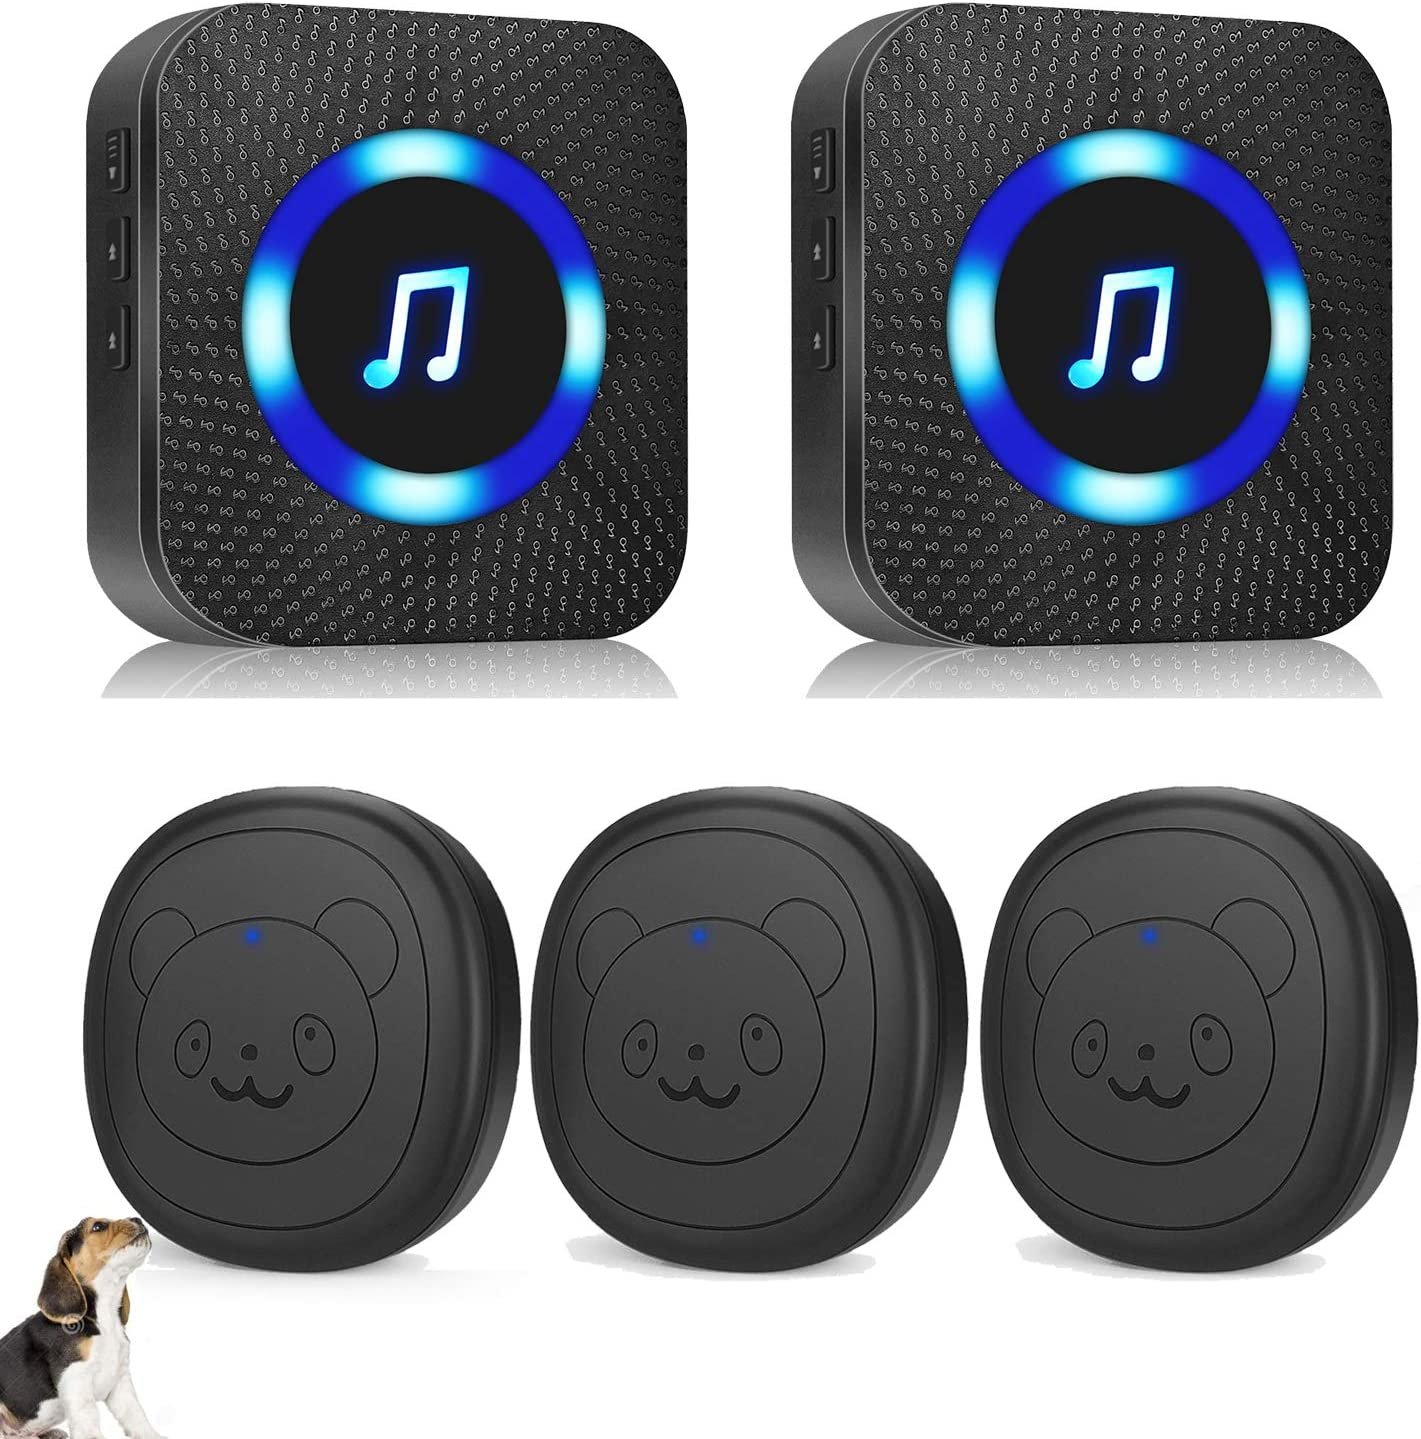 1 Receiver /& 2 Transmitters Daytech Dog Door Bell Wireless Doggie Doorbell for Potty Training with Touch Button